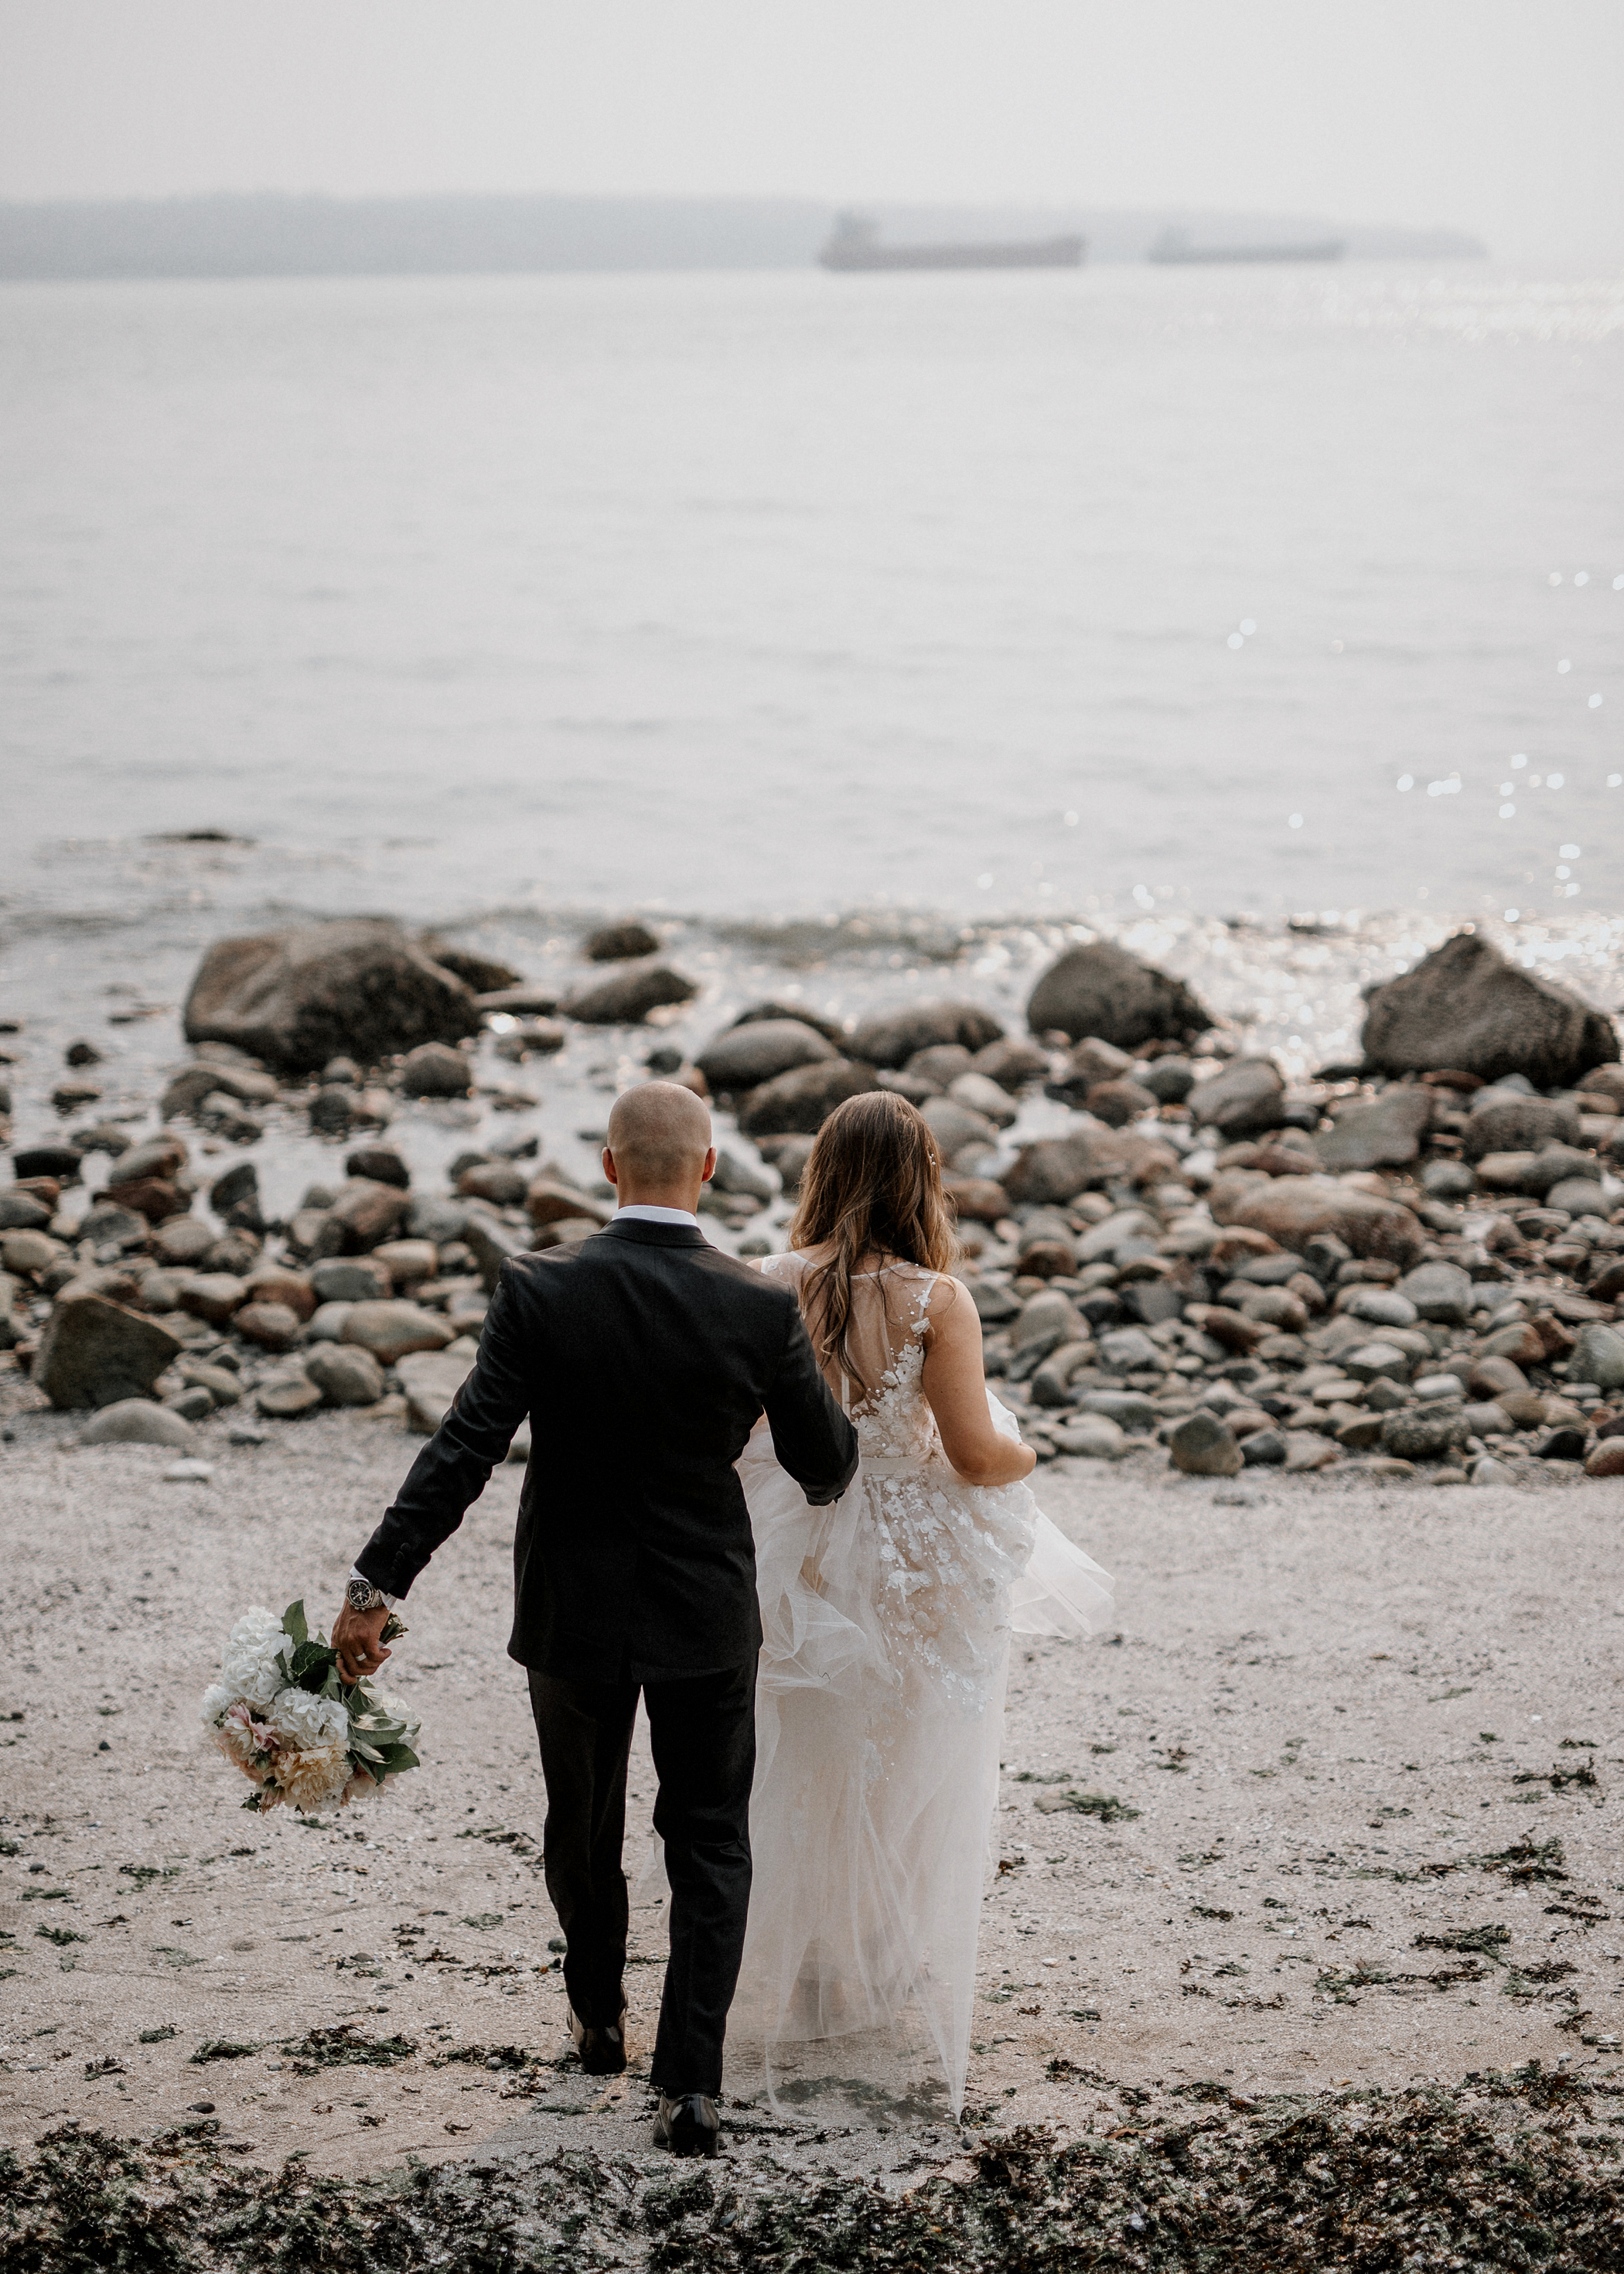 025-kaoverii-silva-LM-wedding-vancouver-photography-elopement-blog.png